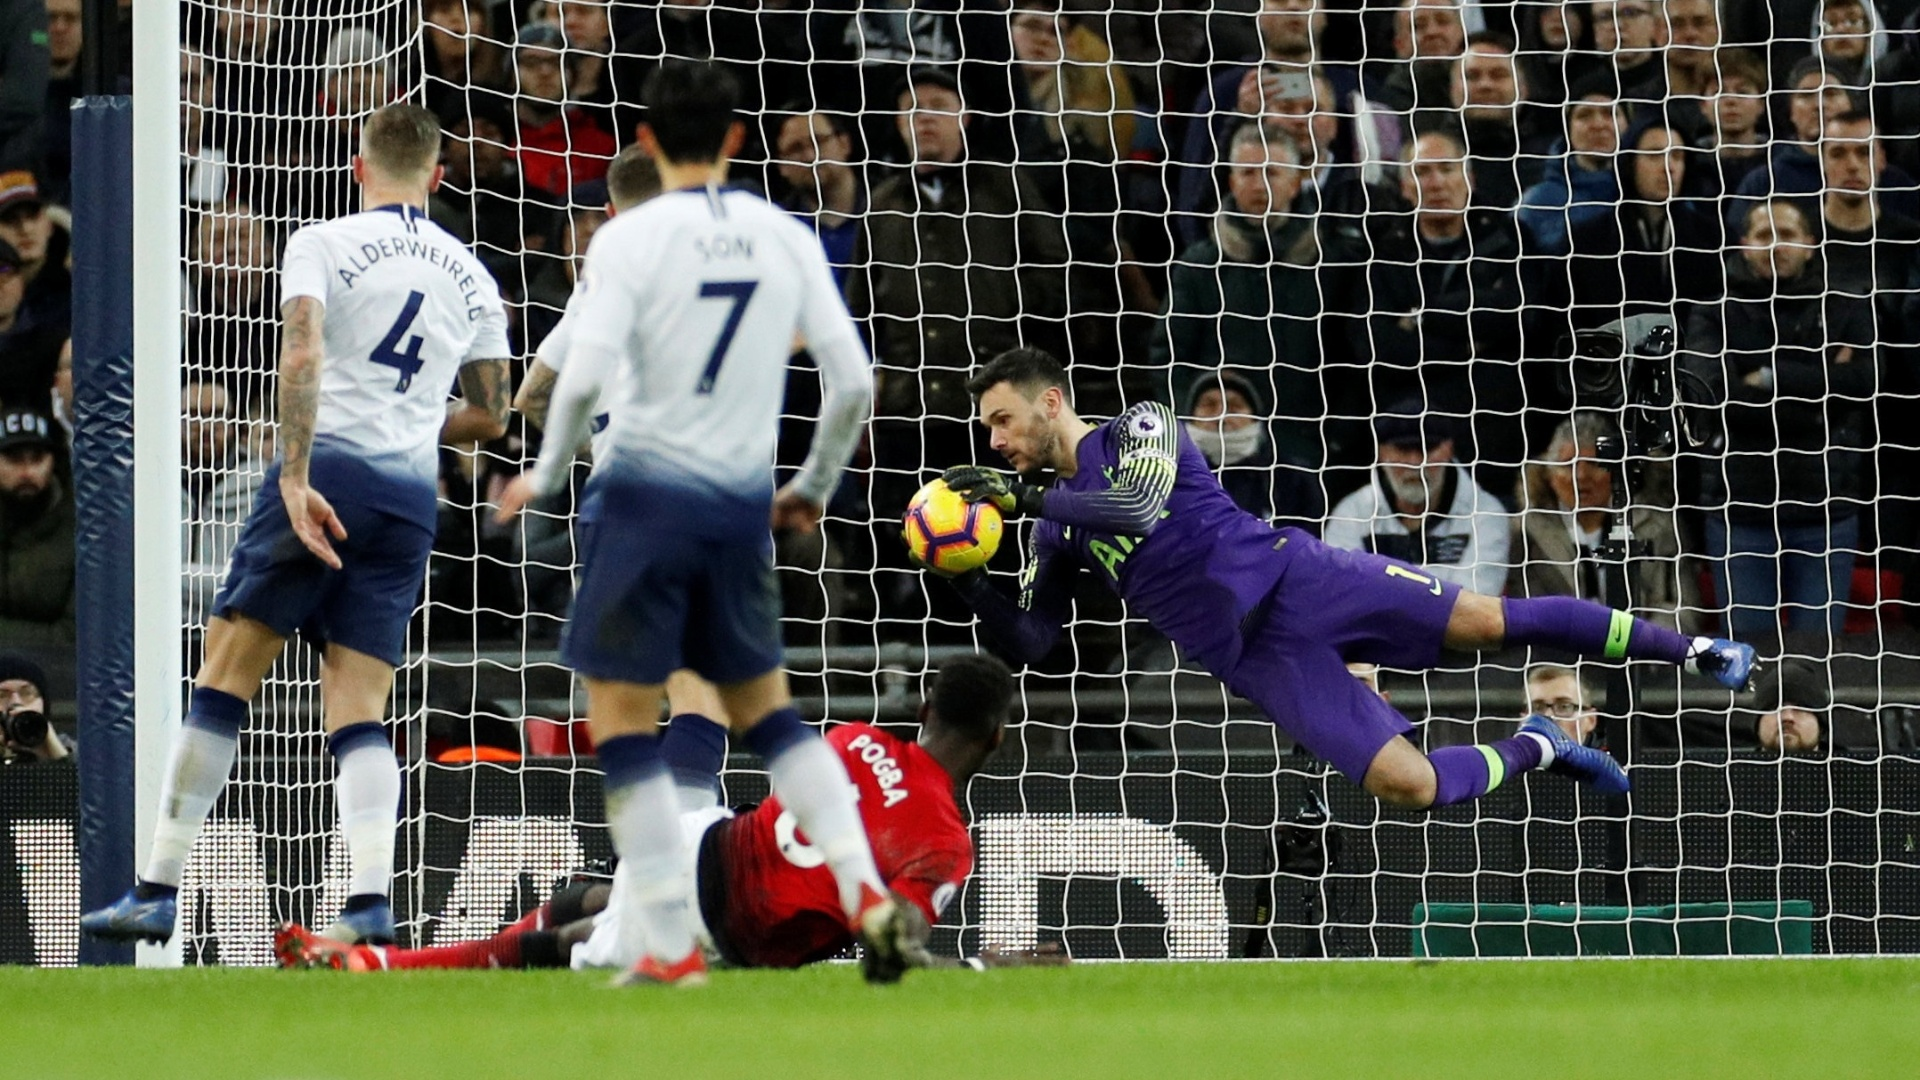 Hugo Lloris, goleiro do Tottenham, defende chute de jogador do United